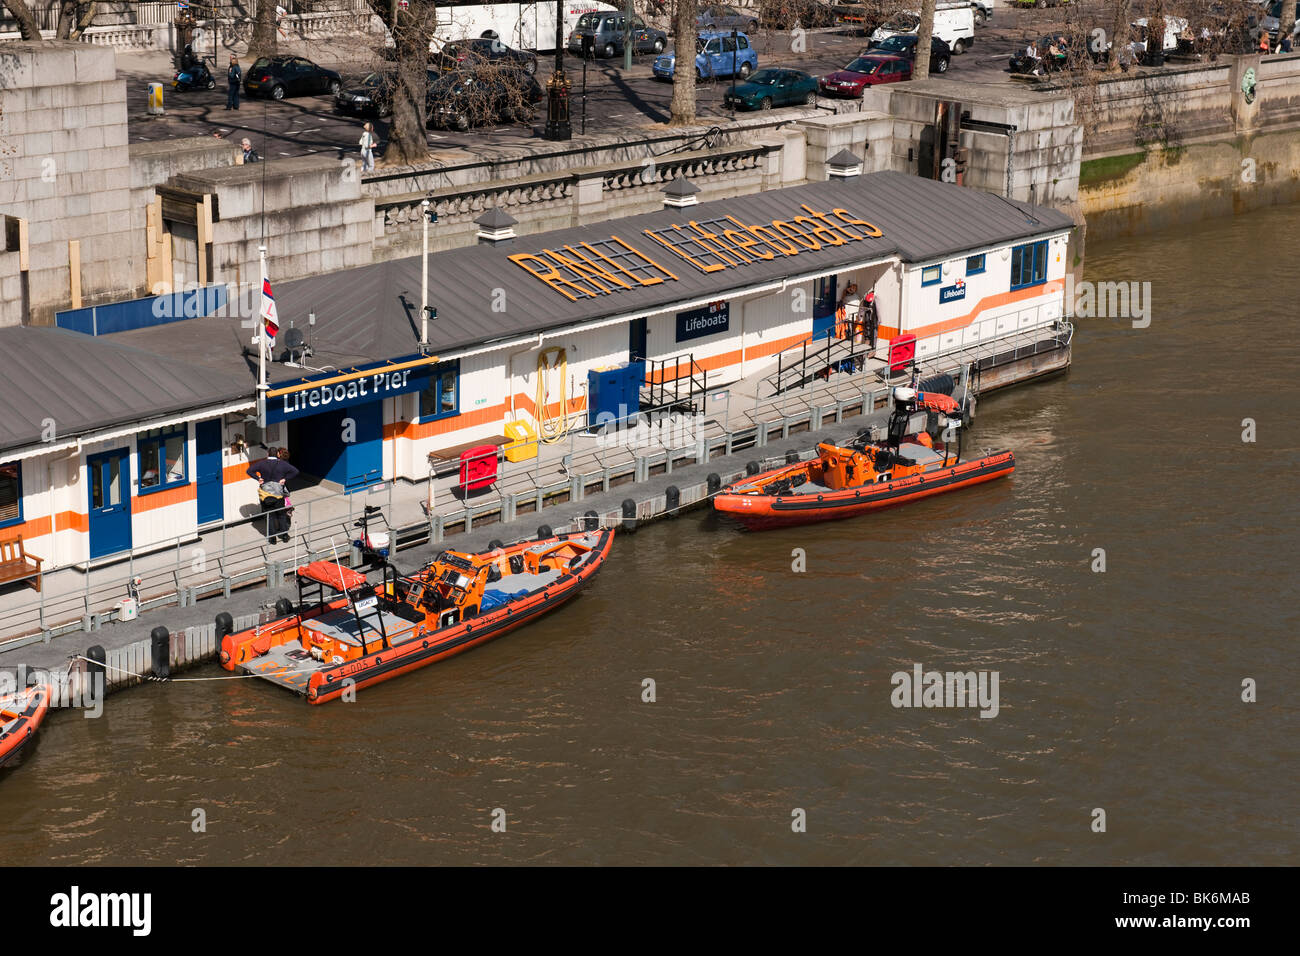 The Royal National Lifeboat Institution Tower station on the River Thames at Waterloo Bridge - Stock Image